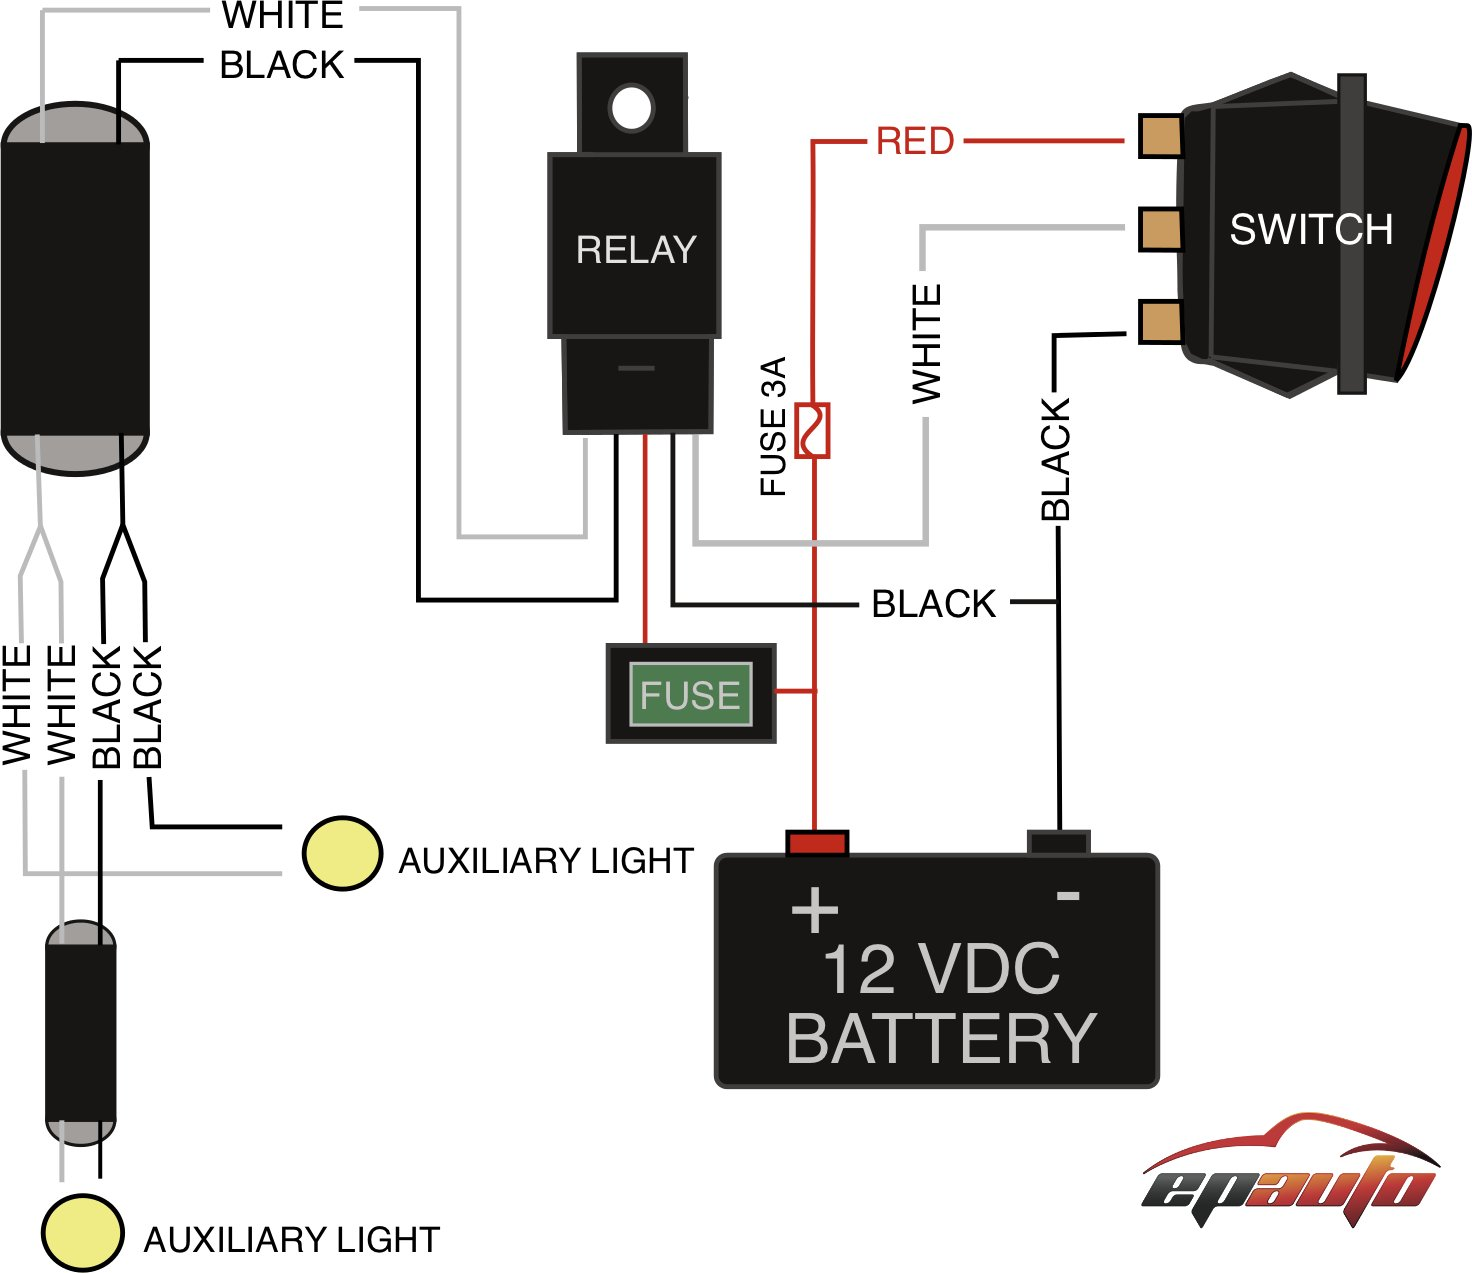 Color Bar For Car Wiring Diagram List Of Schematic Circuit 1981 Yamaha Xj650 Ignition Off Road Led Lights With Harness Simple Rh David Huggett Co Uk